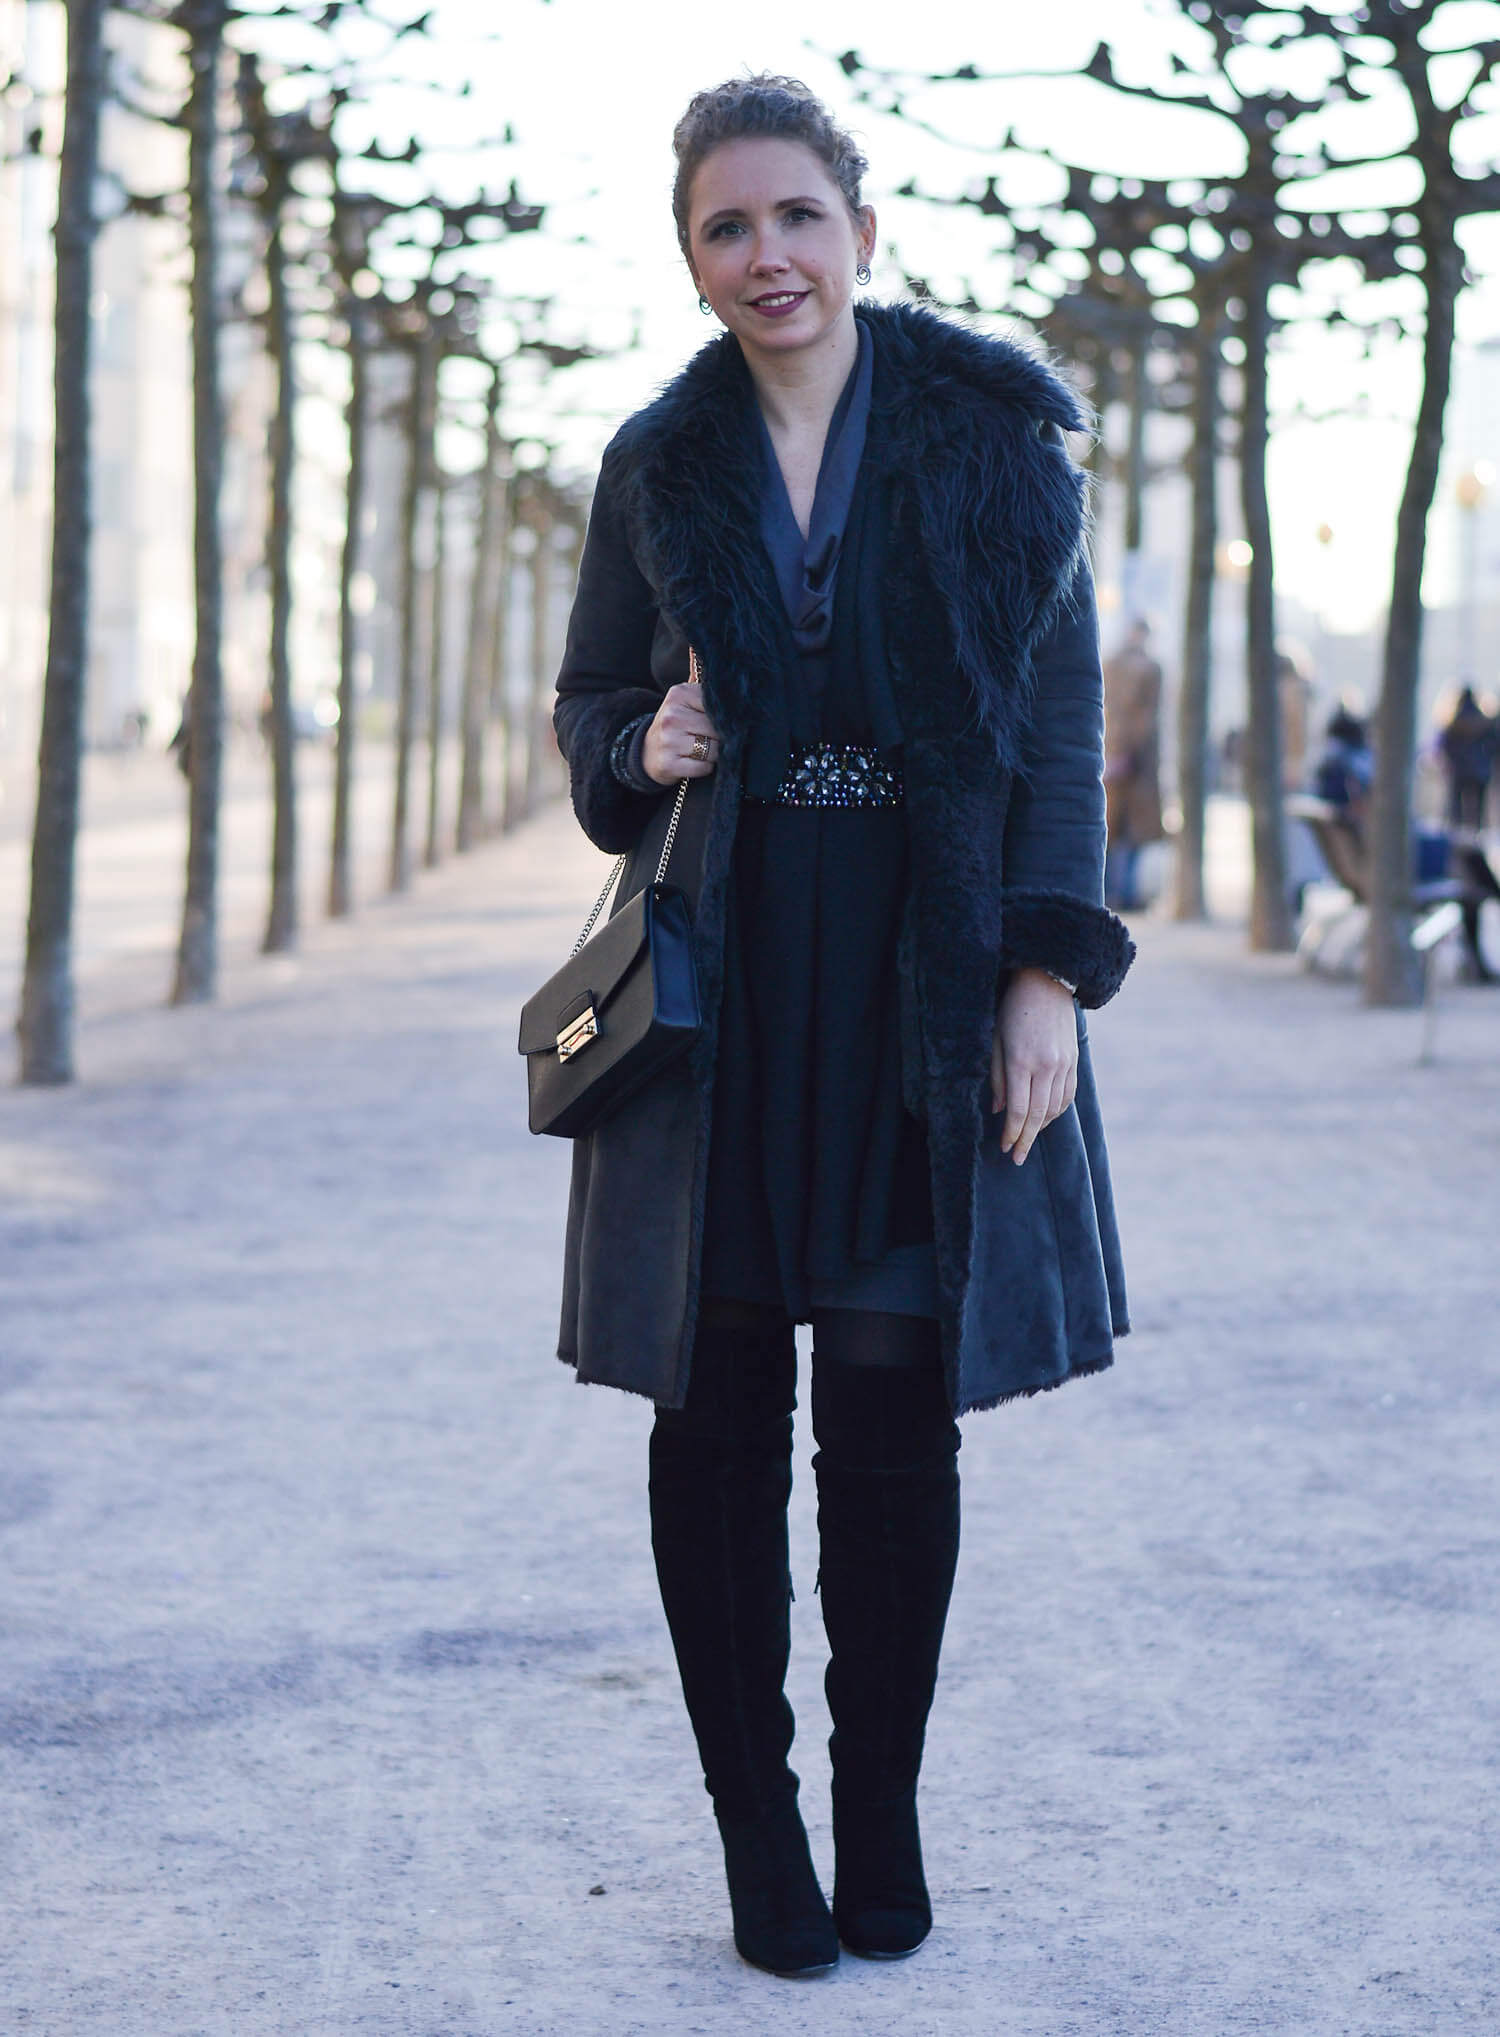 Kationette-fashionblog-Outfit-Shadesofgrey-Shearling-Knit-Overknees-Dusseldorf-curls-furla